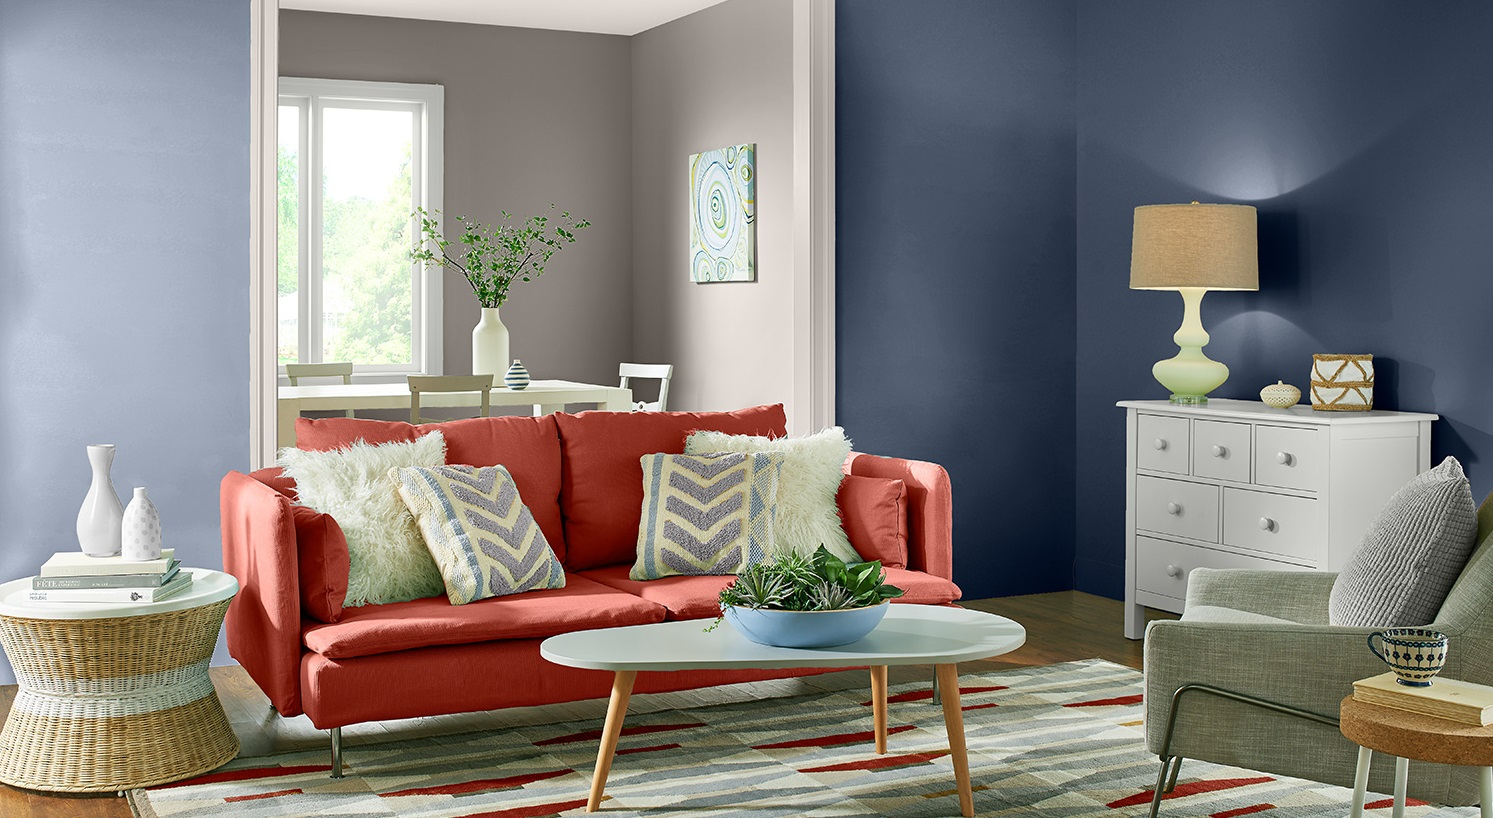 bold. 70+ Hottest Colorful Living Room Decorating Ideas in 2021